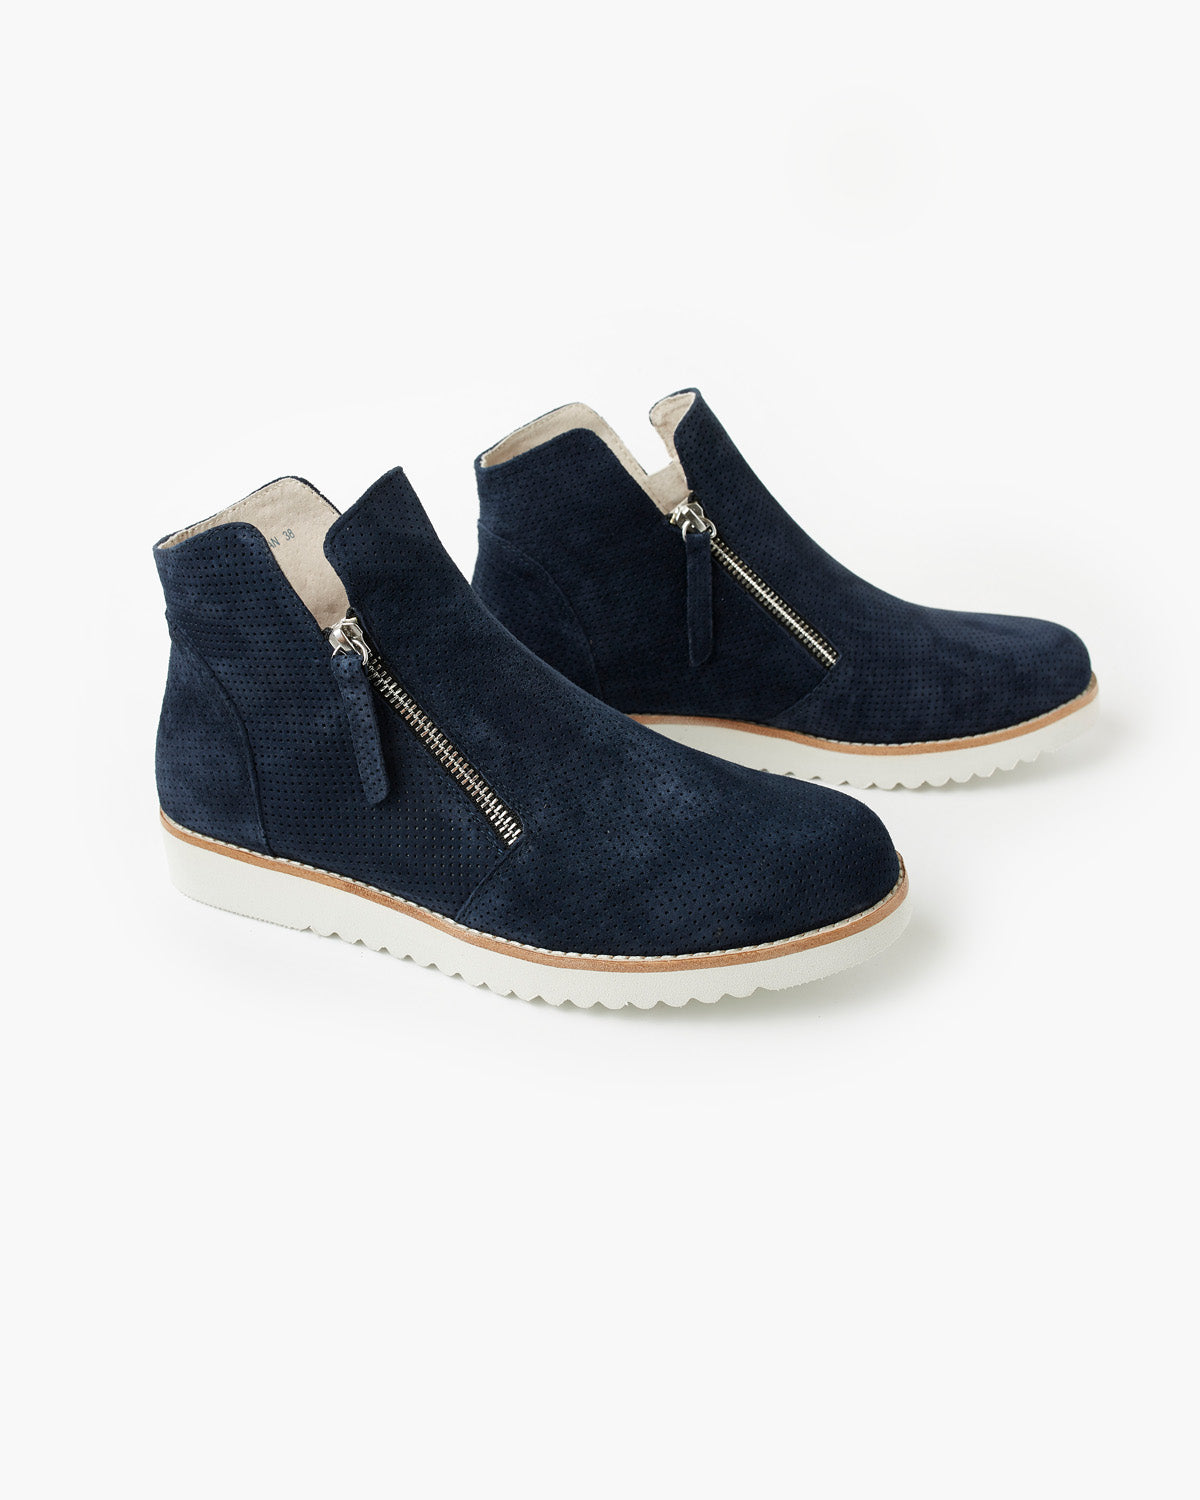 Morgan Leather Boot - Navy Nubuck